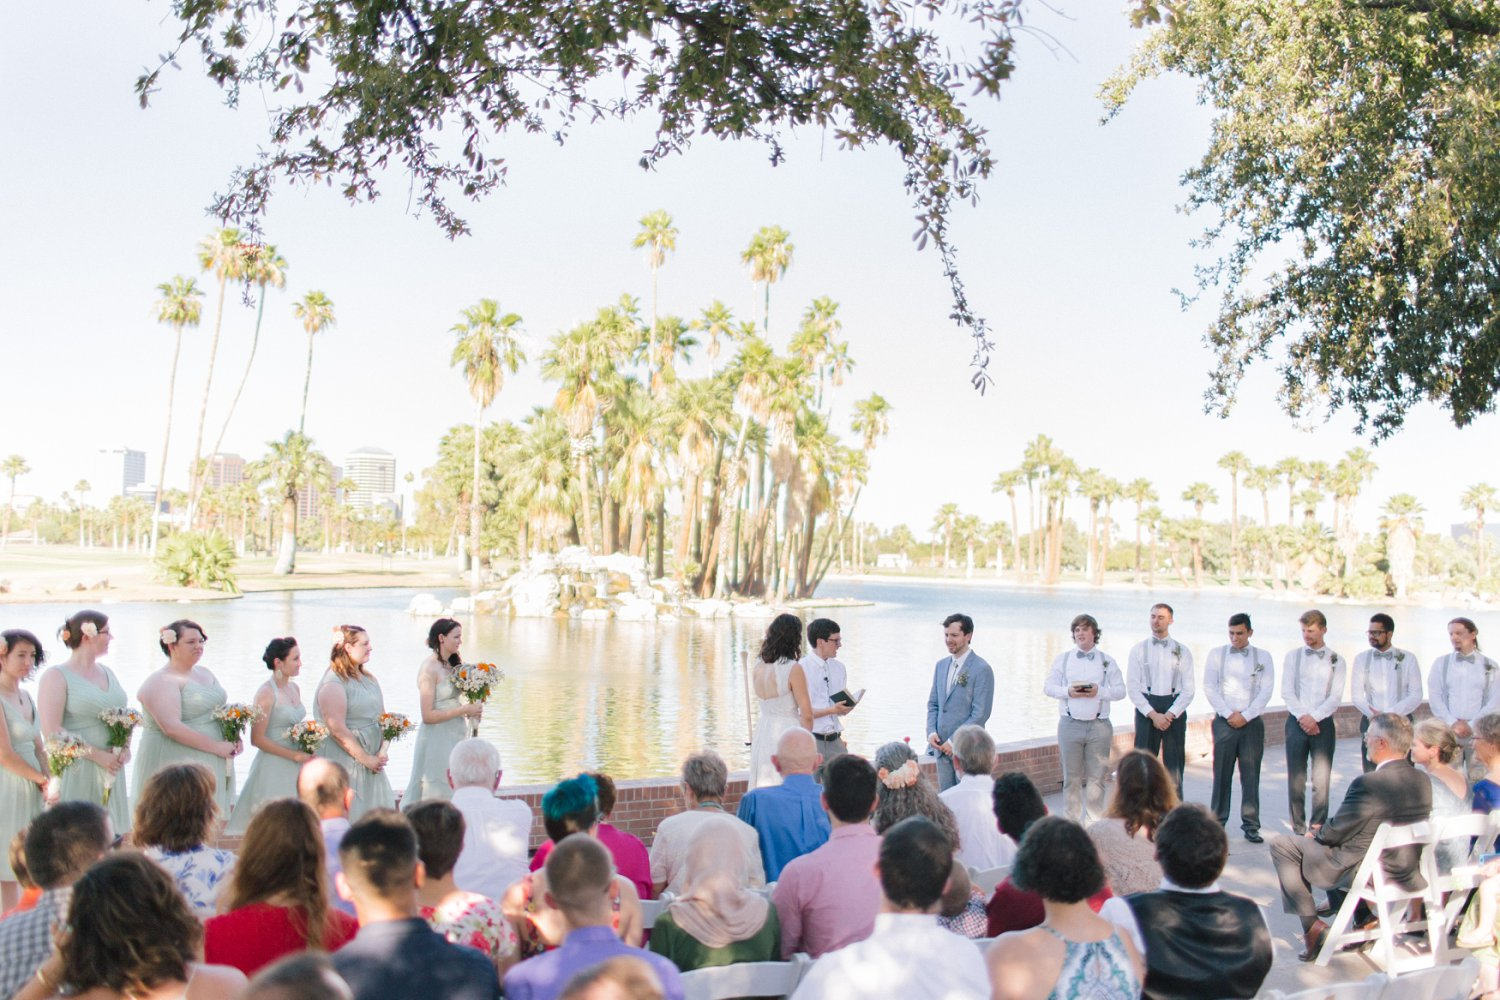 Encanto Park wedding ceremony